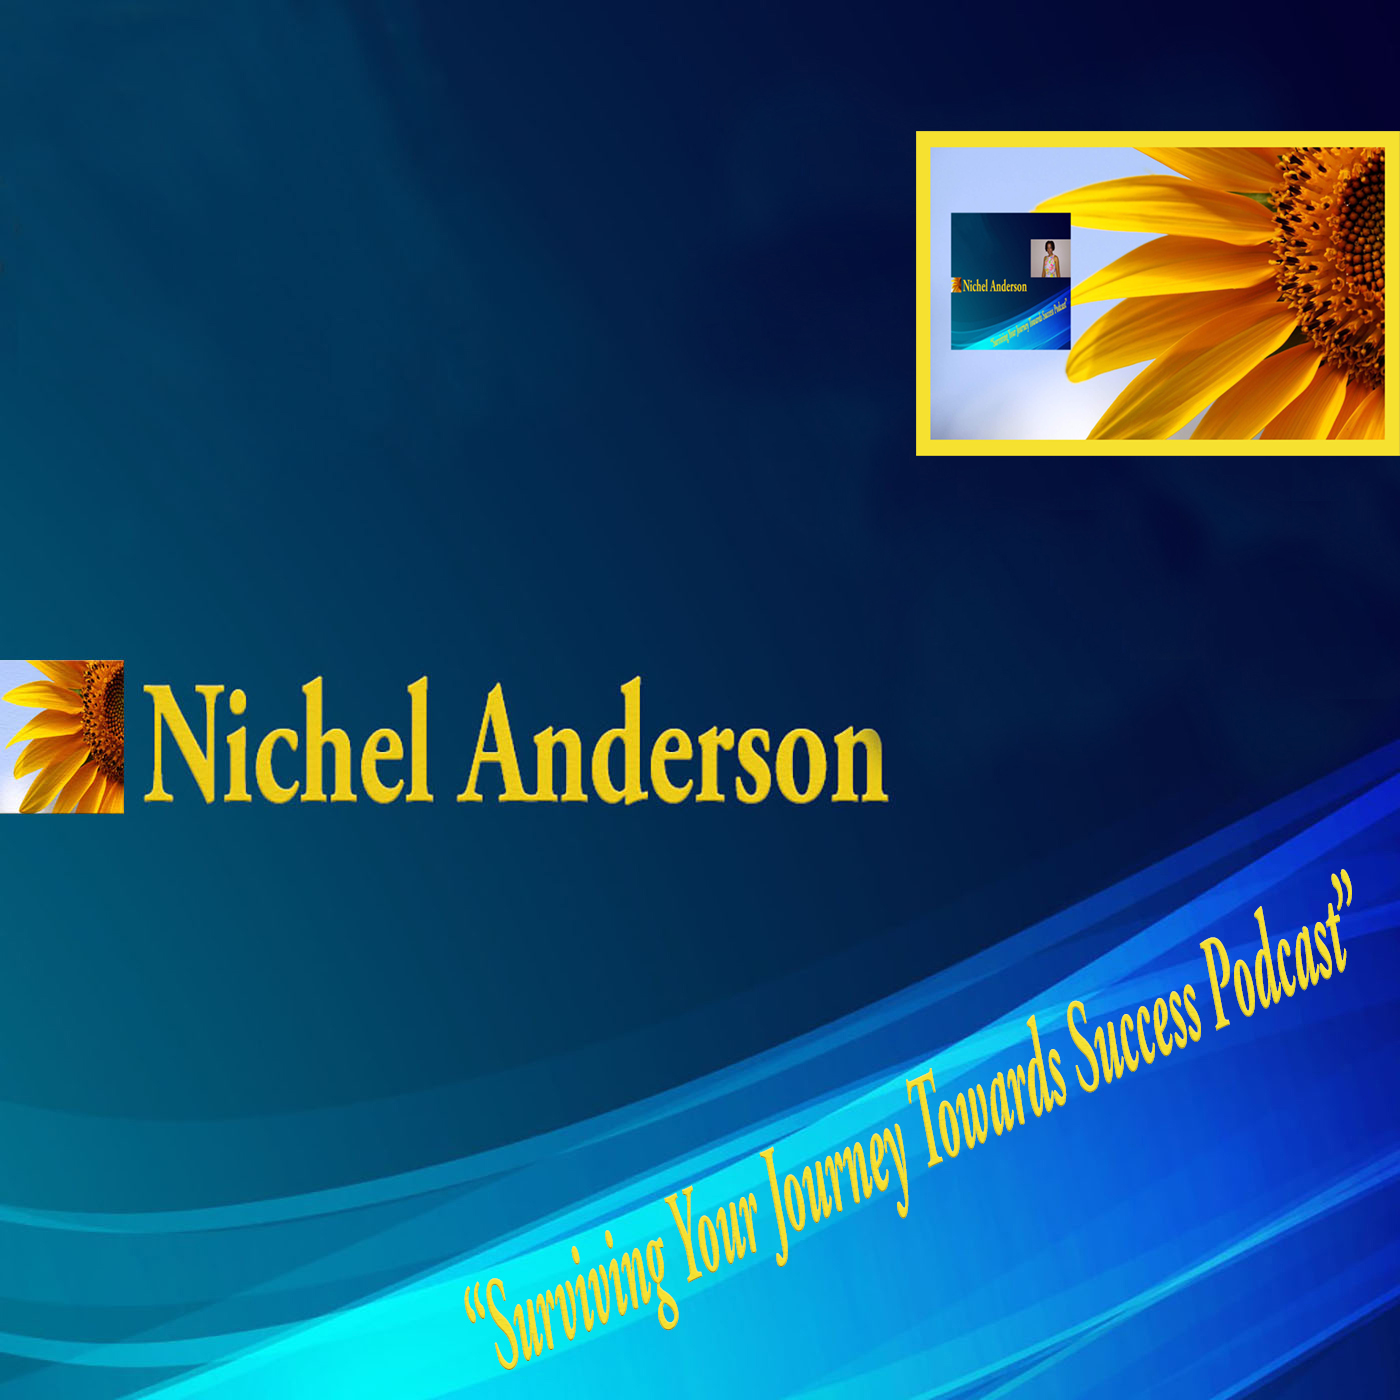 Press Release - Podcast App and Official Website of Nichel Anderson App Now Available